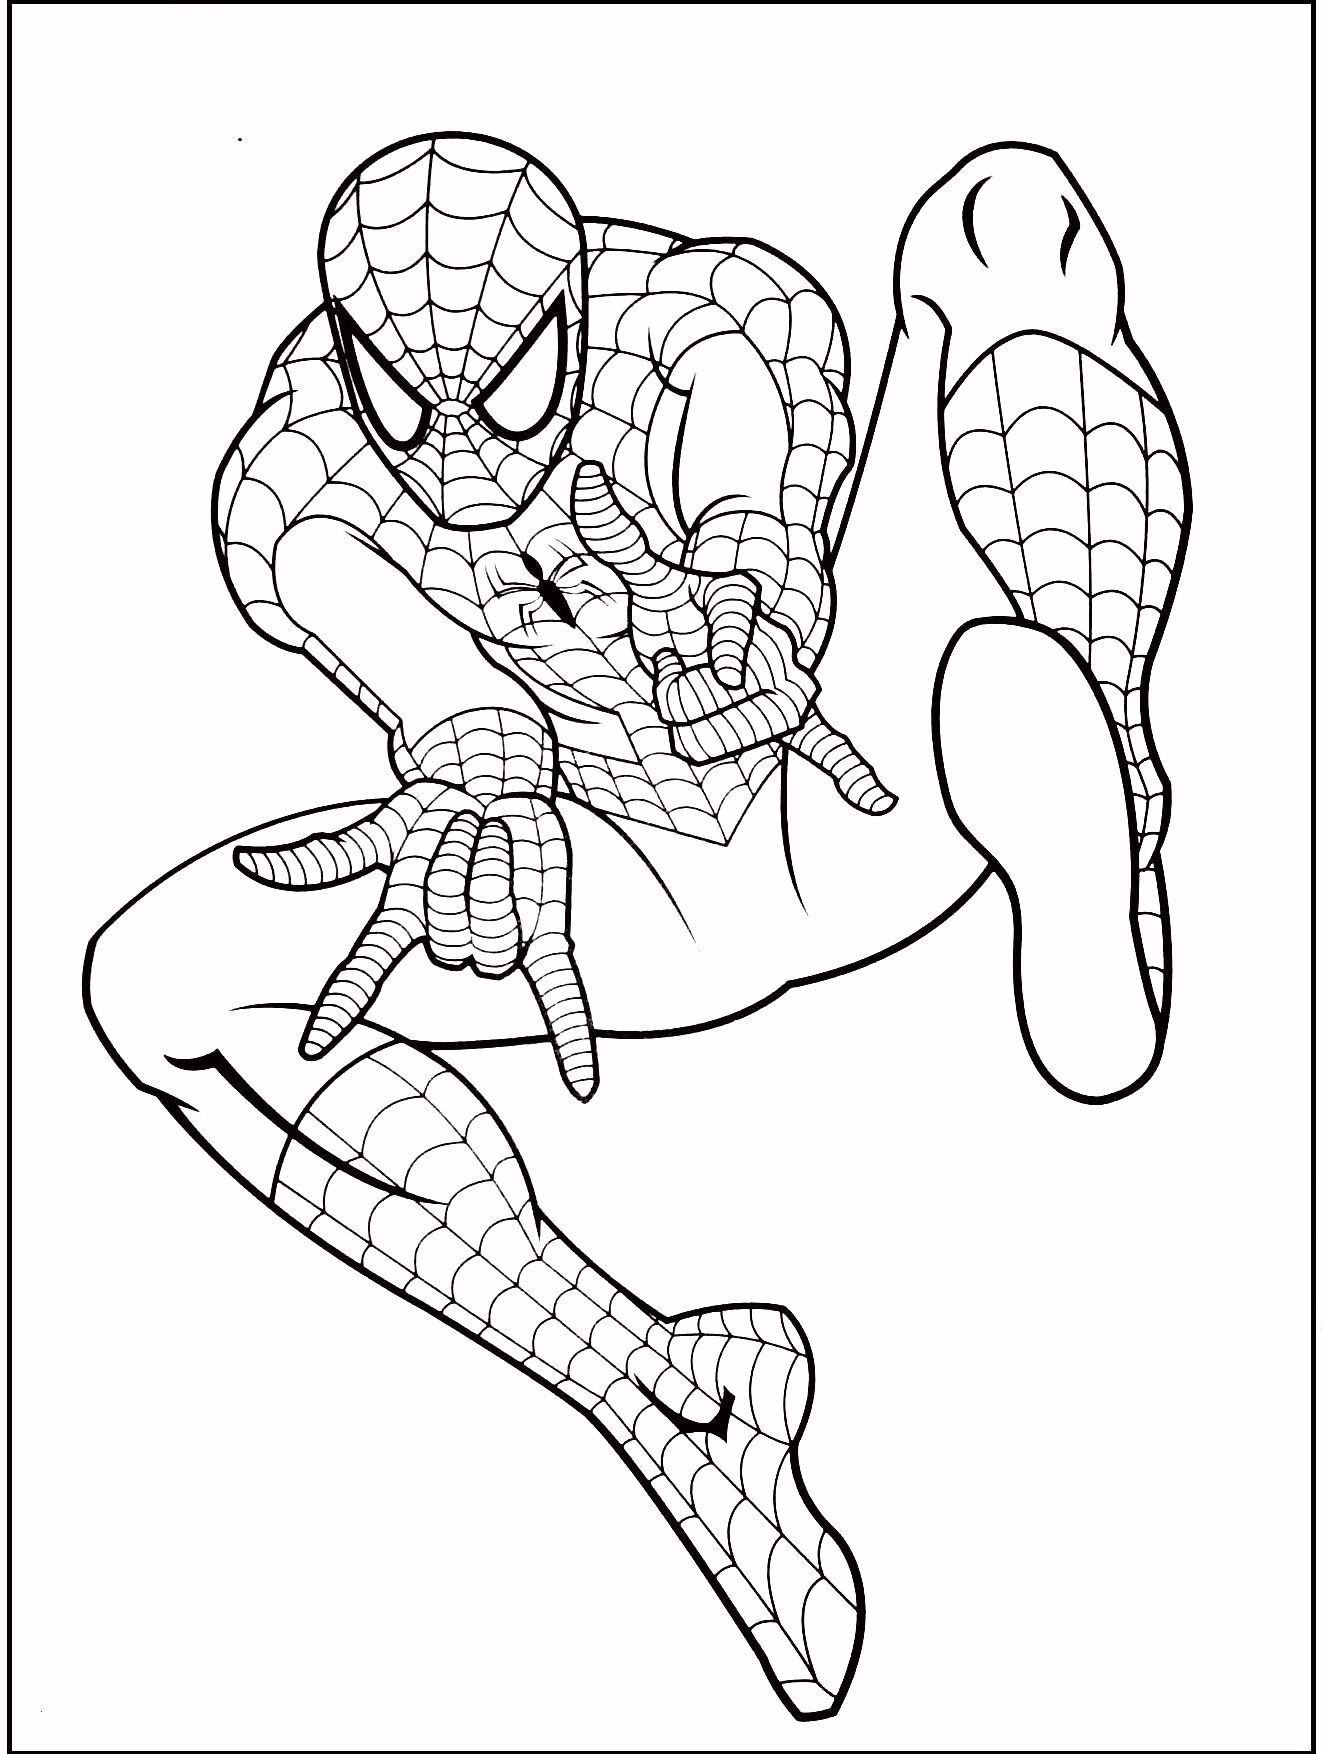 21 Lego Spiderman Coloring Pages Collection - Coloring Sheets